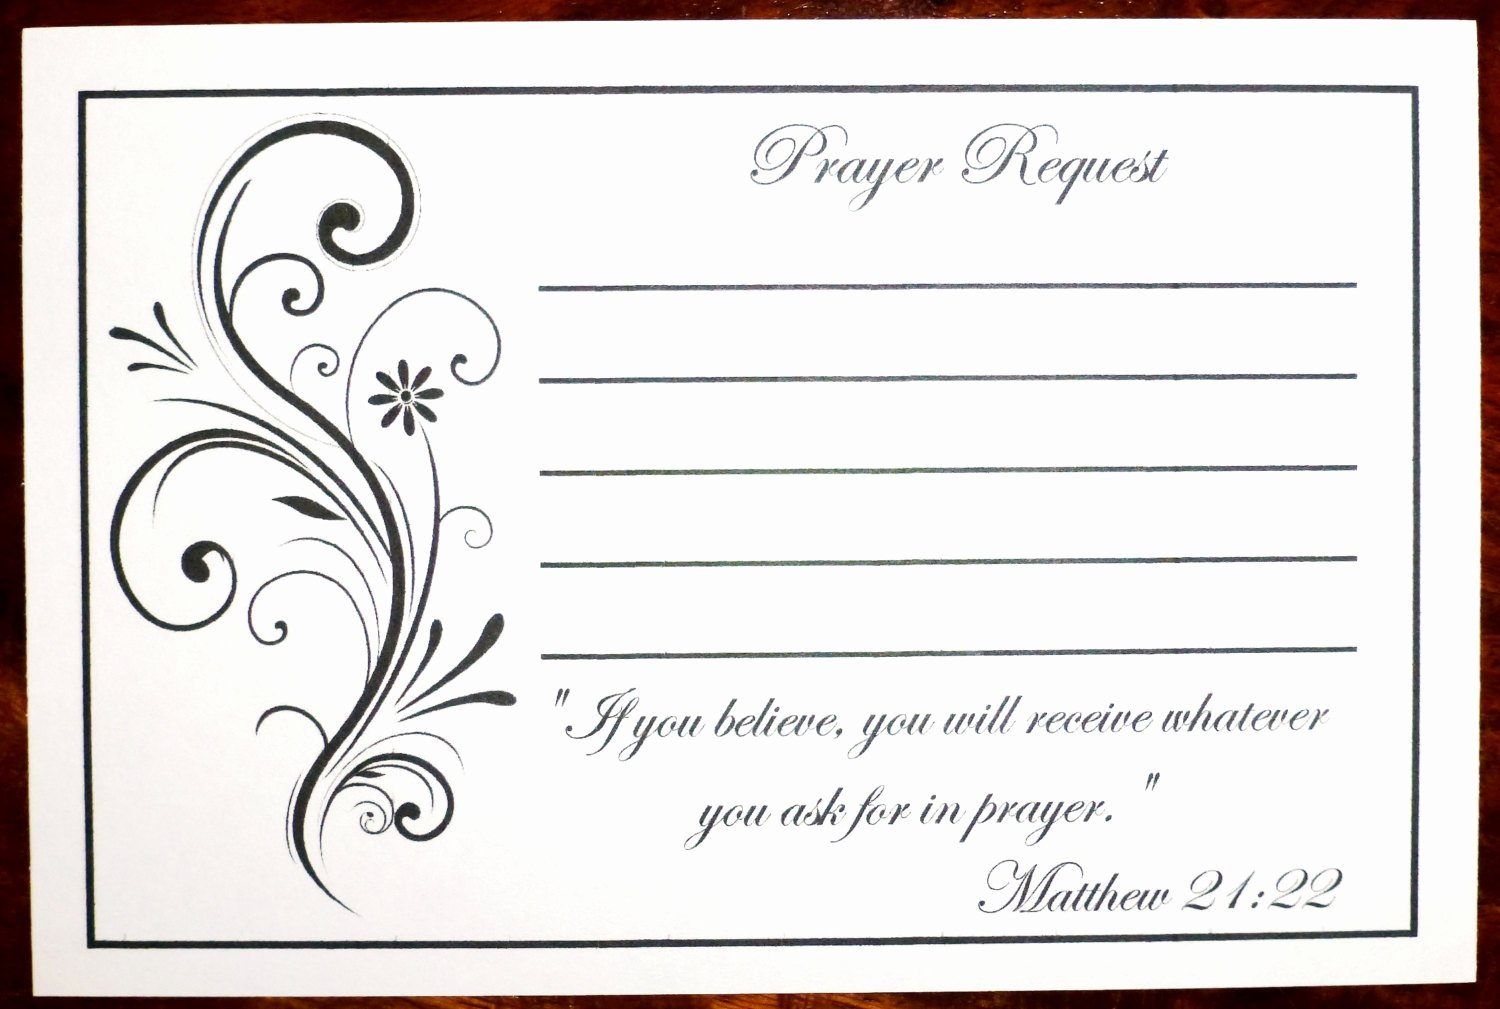 Prayer Request Cards Template Inspirational Pack Of 100 Prayer Request Cards